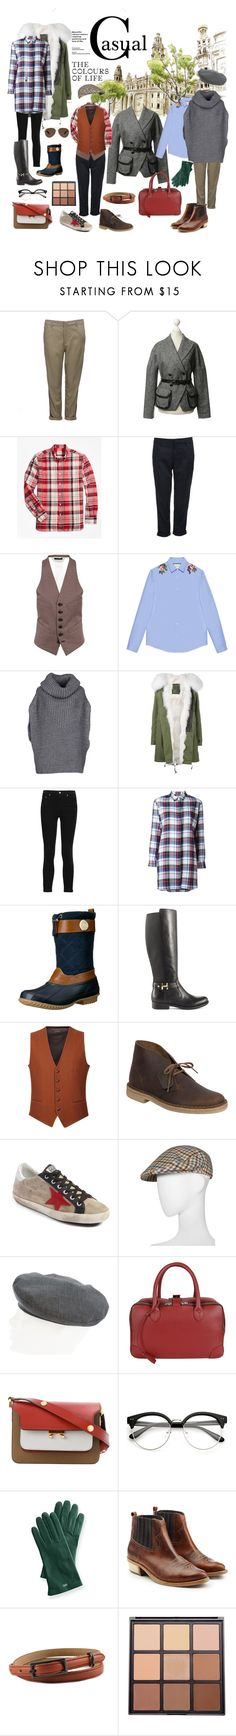 """casual"" by irina-rainbow on Polyvore featuring мода, rag & bone, Stefanel, Brooks Brothers, Dsquared2, Gucci, Mr & Mrs Italy, Golden Goose, Tommy Hilfiger и Tagliatore"